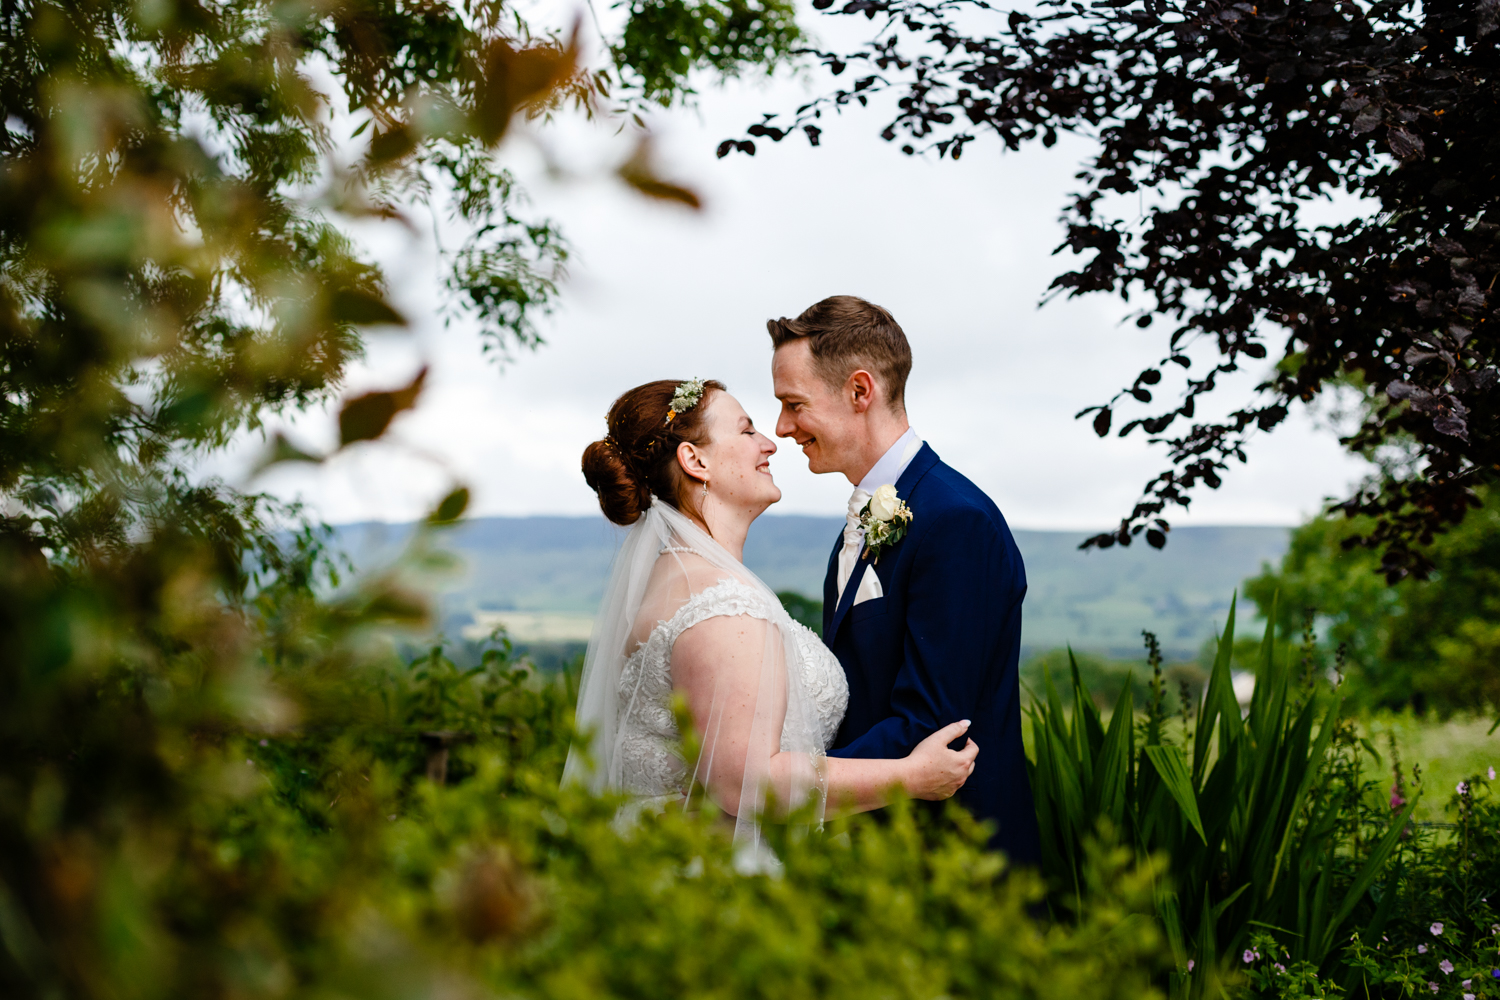 Lancashire-wedding-photographer-adele-and-alex-127.jpg